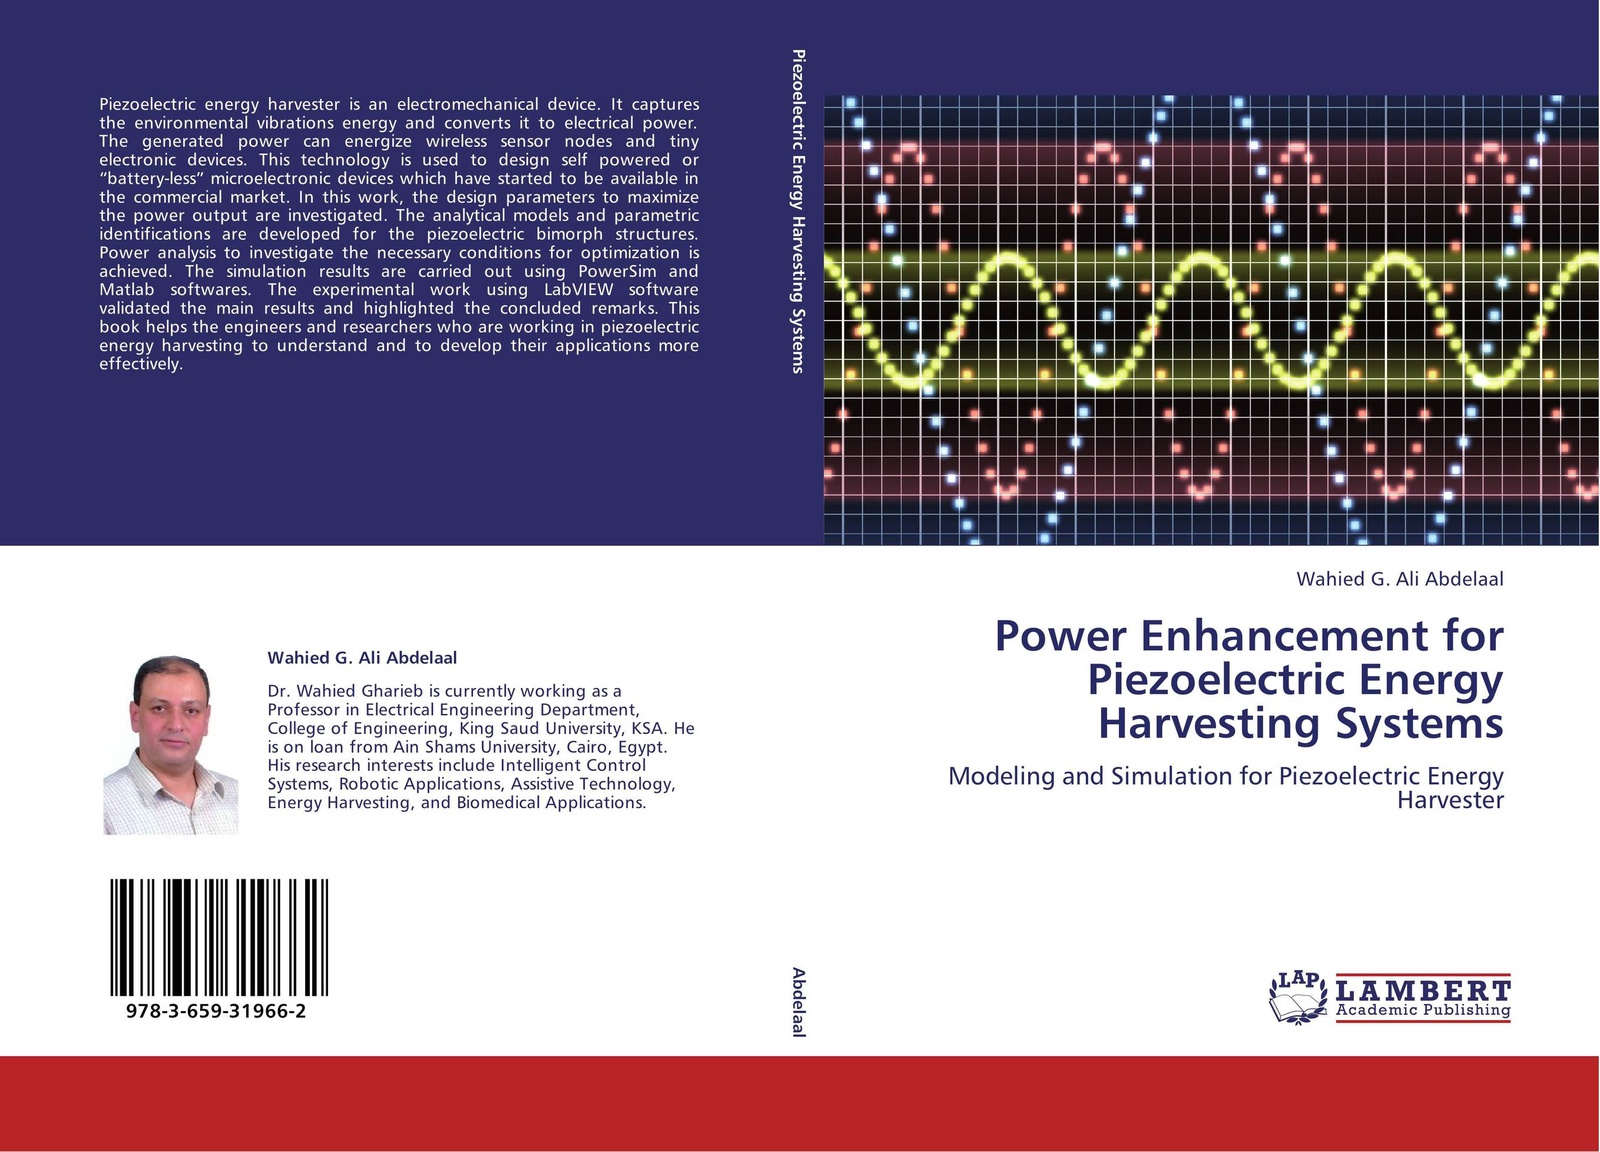 Wahied G. Ali Abdelaal Power Enhancement for Piezoelectric Energy Harvesting Systems